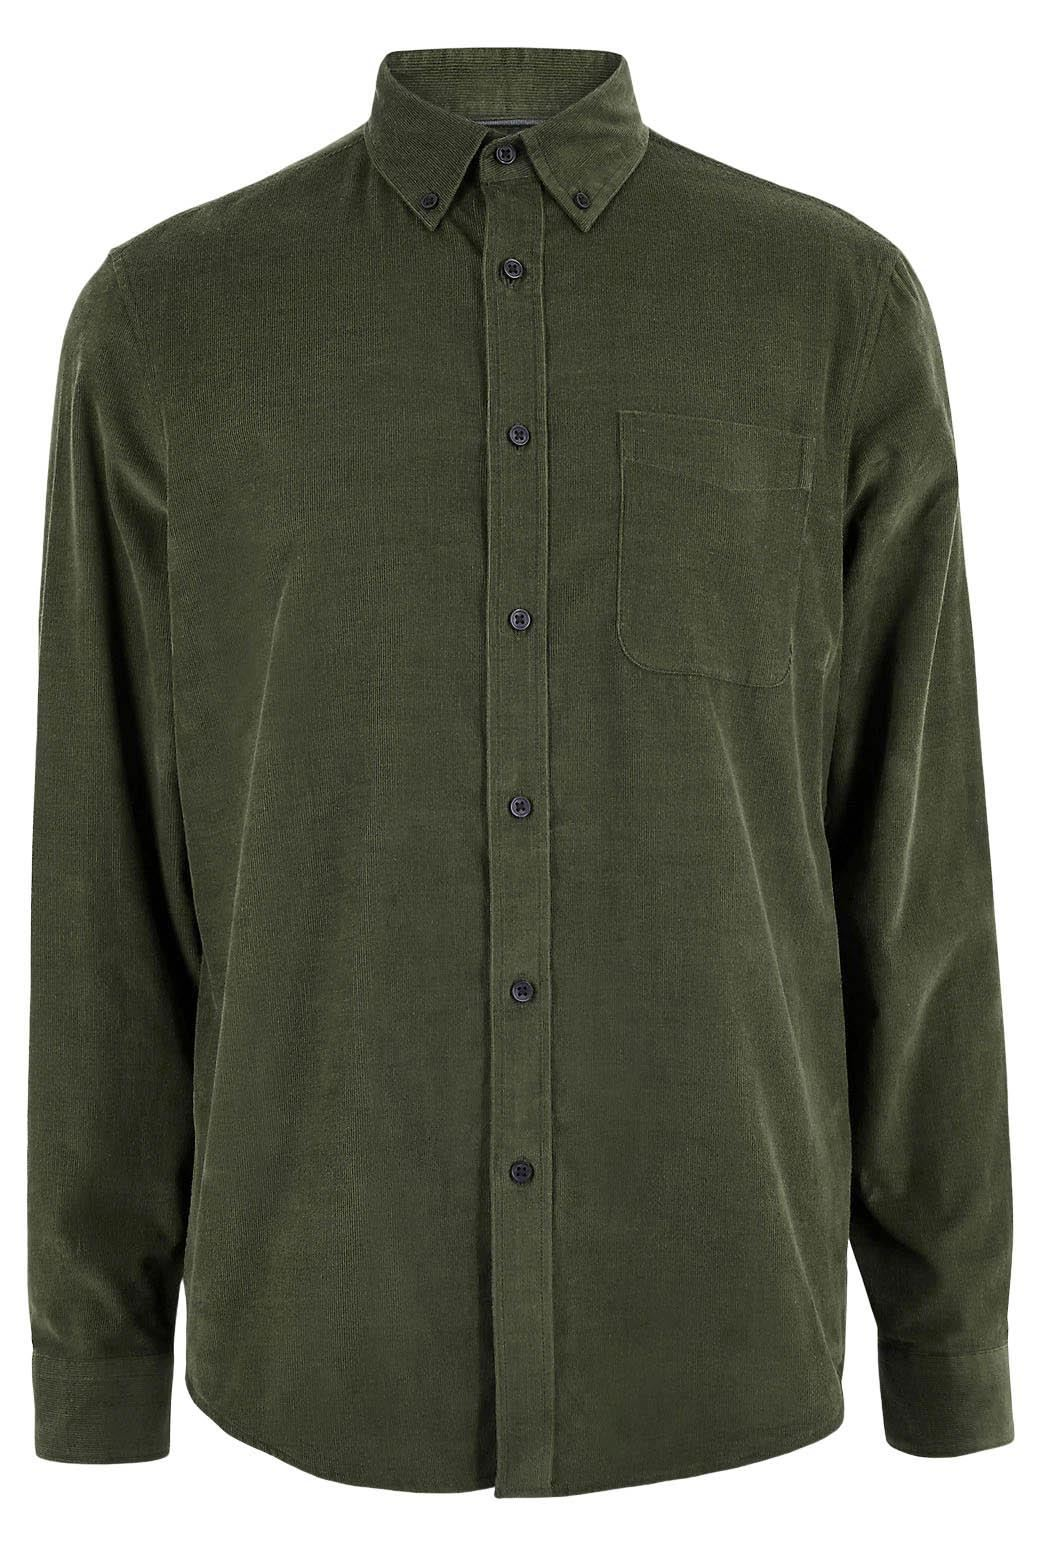 M-amp-S-Marks-and-Spencer-Mens-Fine-Cotton-Corduroy-Needlecord-Shirt-XL-4XL thumbnail 17